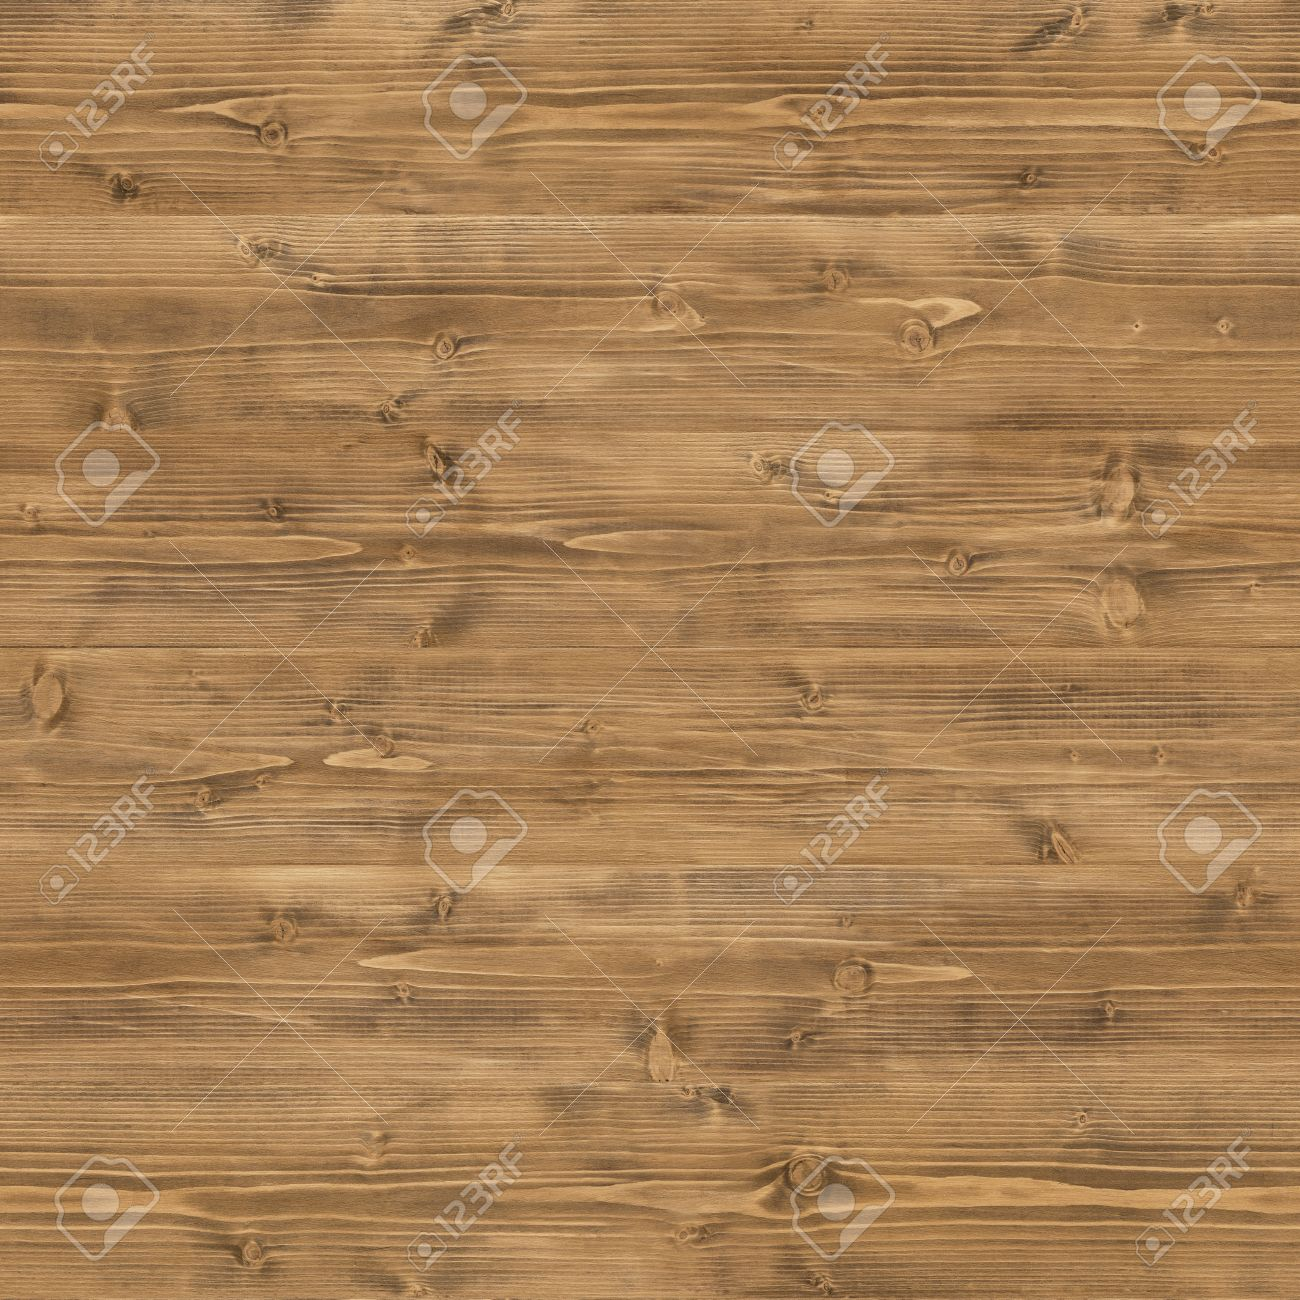 Wooden table background pattern - Seamless Rustic Brown Wood Texture Can Be Used As Floor Wall Pattern Or